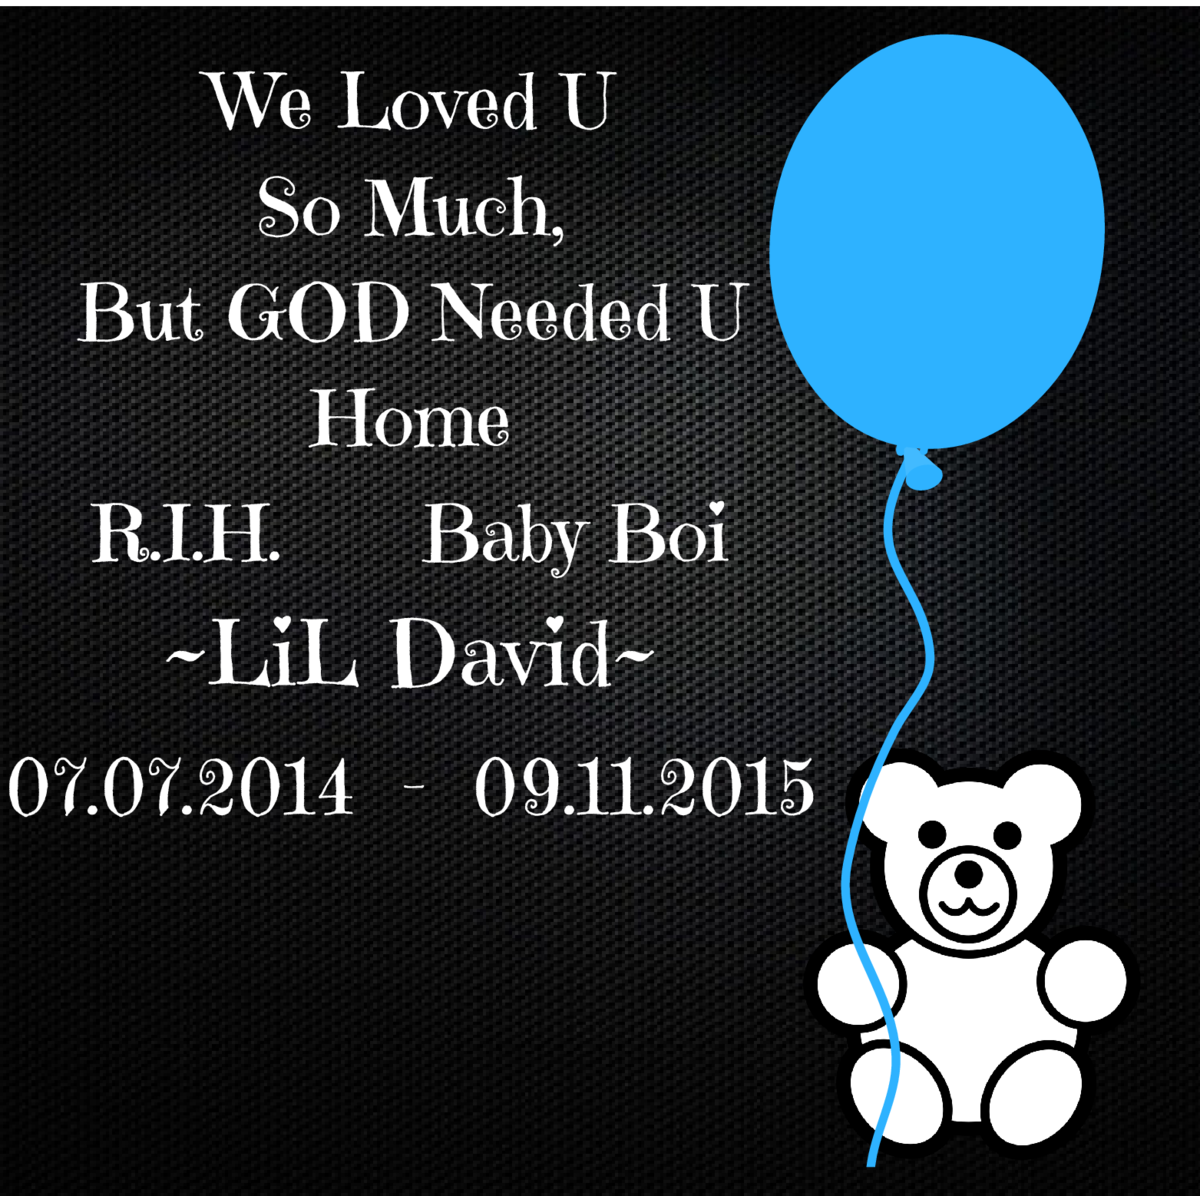 We Loved U So Much, But GOD Needed U Home R.I.H. Baby Boi   LiL David  07.07.2014 - 09.11.2015